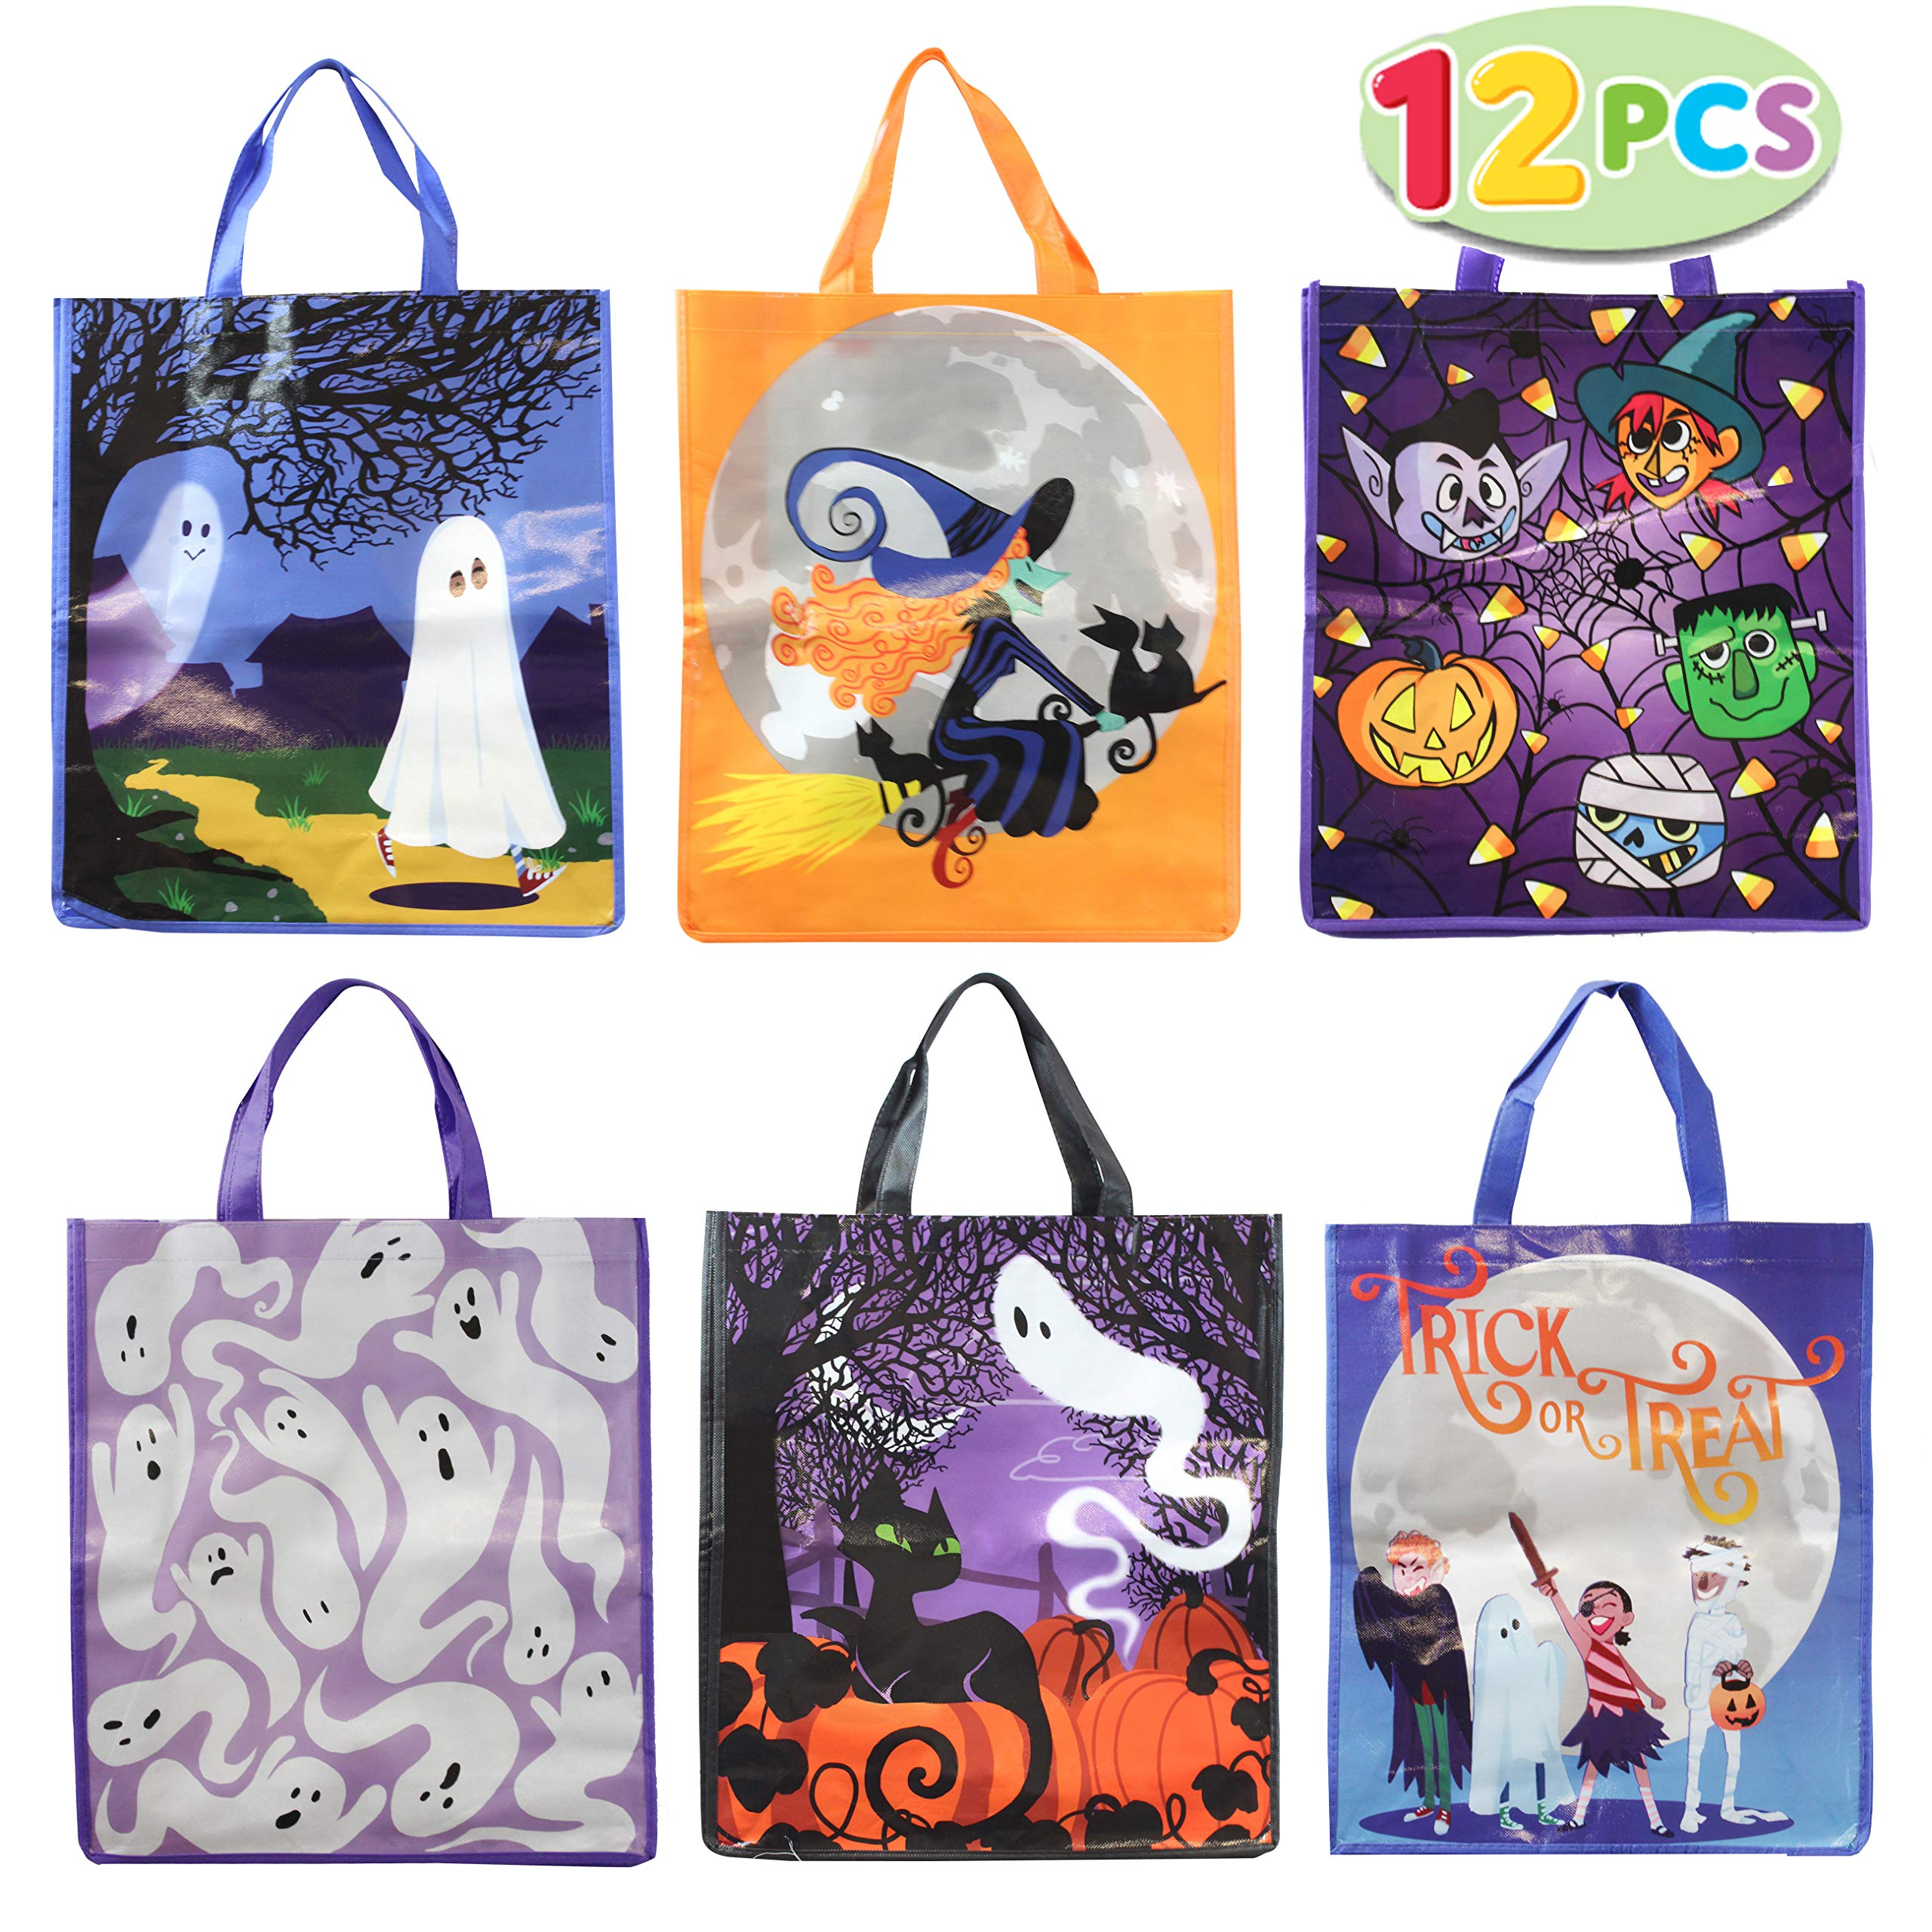 JOYIN 12 Halloween Large Treat Goody Tote Bags 17'' x 15'' for Halloween Trick or Treat Candy Bags, Gift Goodie Bags, School Classroom Bags, Party Favor Supplies by JOYIN